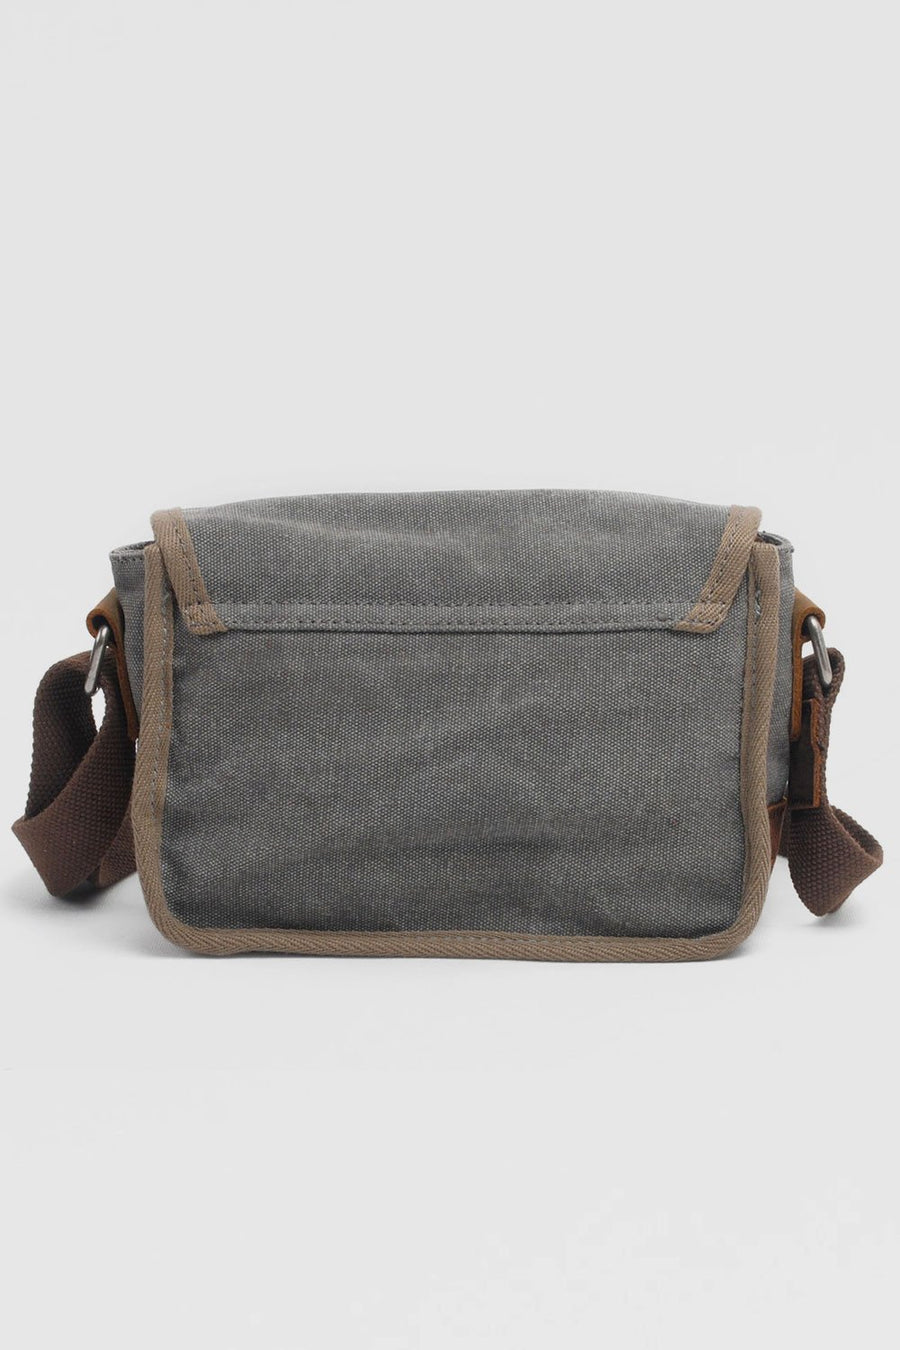 Vintage Leather Canvas Bag - Zebrant